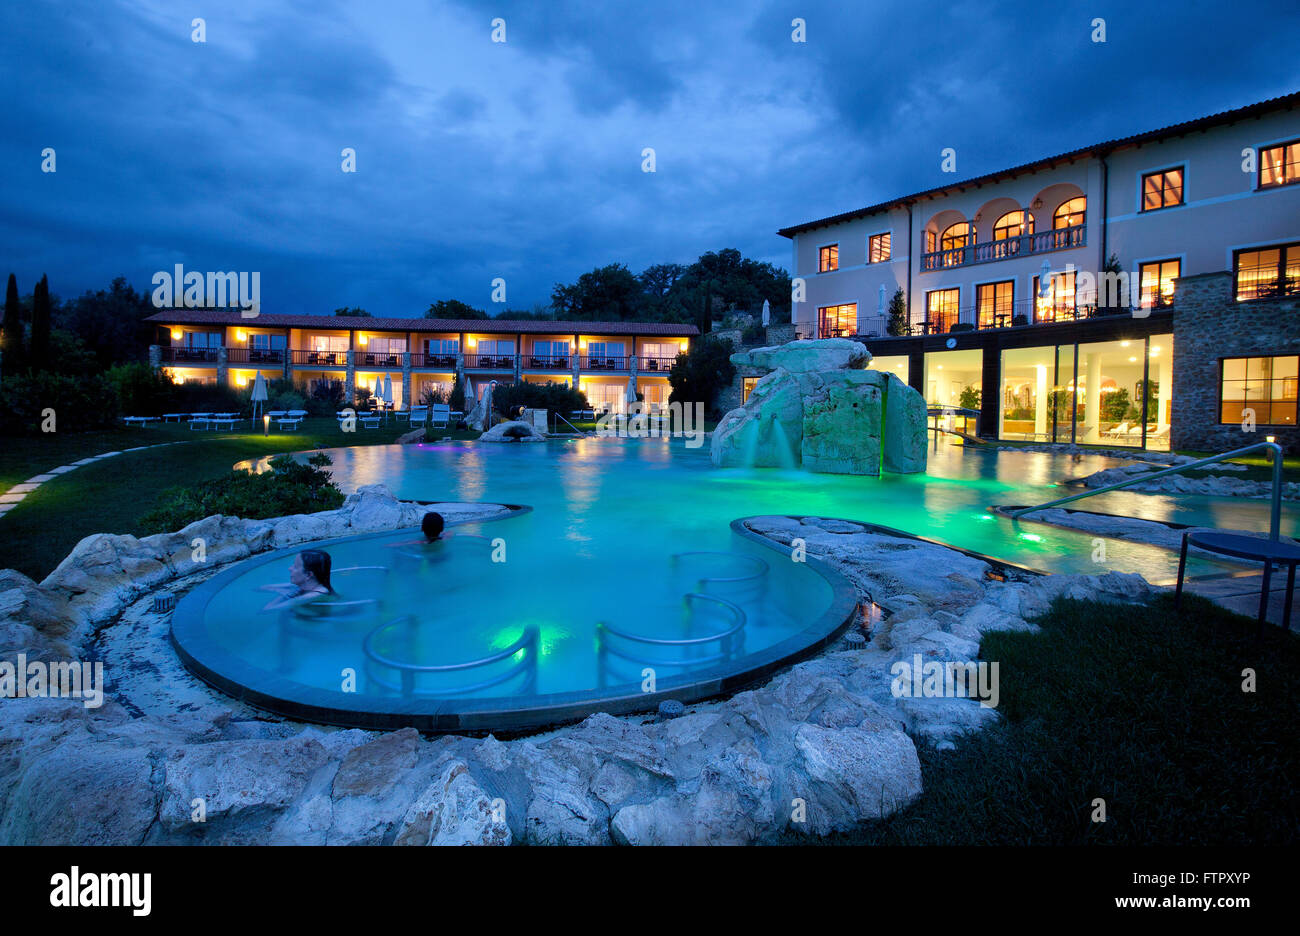 Hotel adler thermae spa relax resort bagno vignoni toscana stock photo royalty free image - Adler bagno vignoni ...